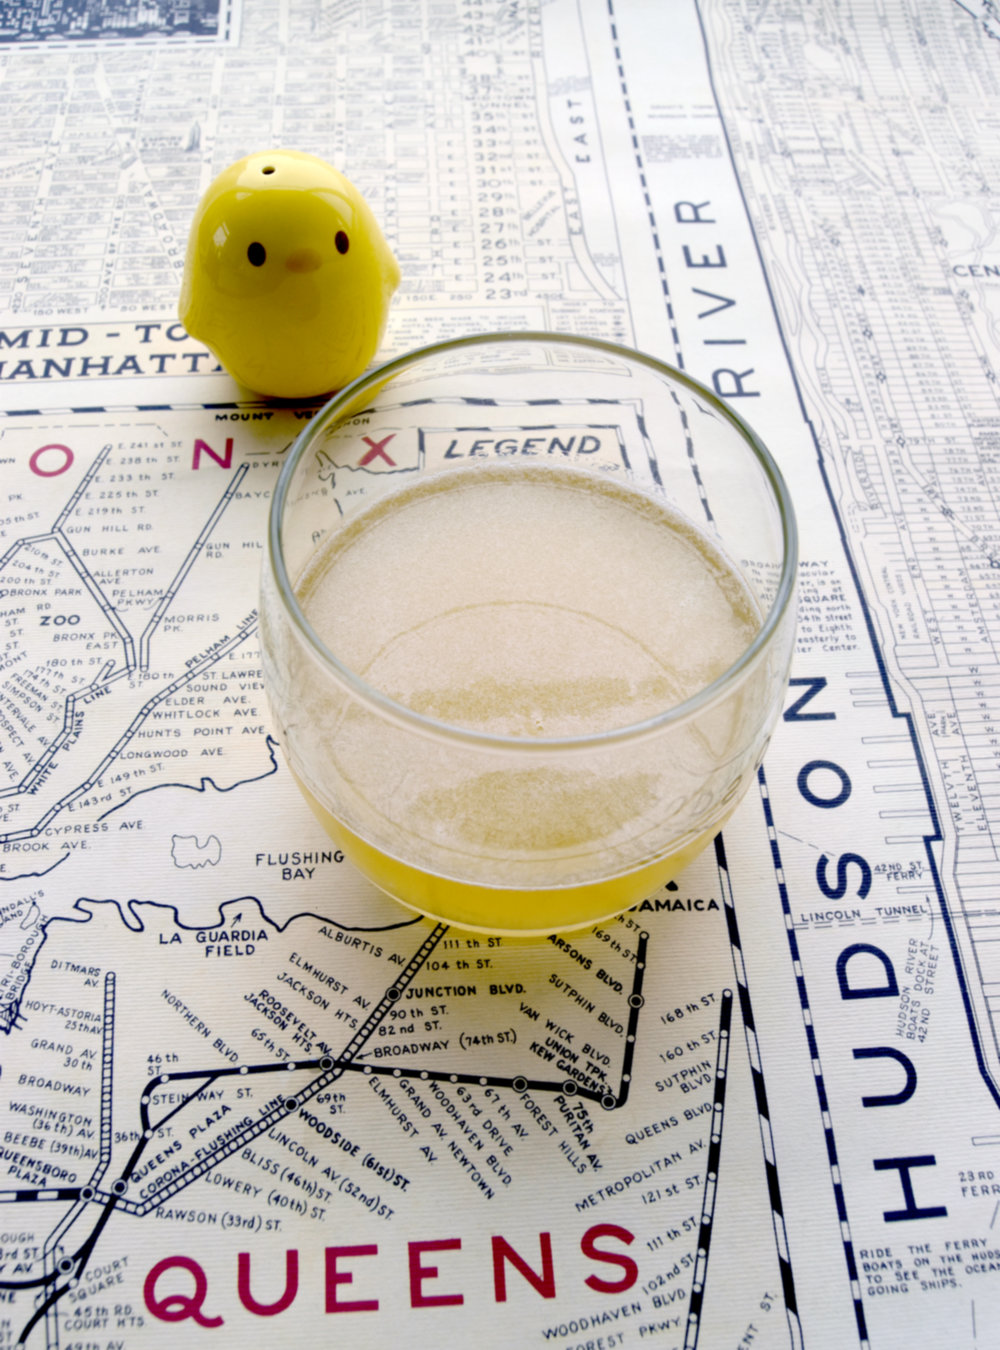 Here be Chickens - Tequila cocktail